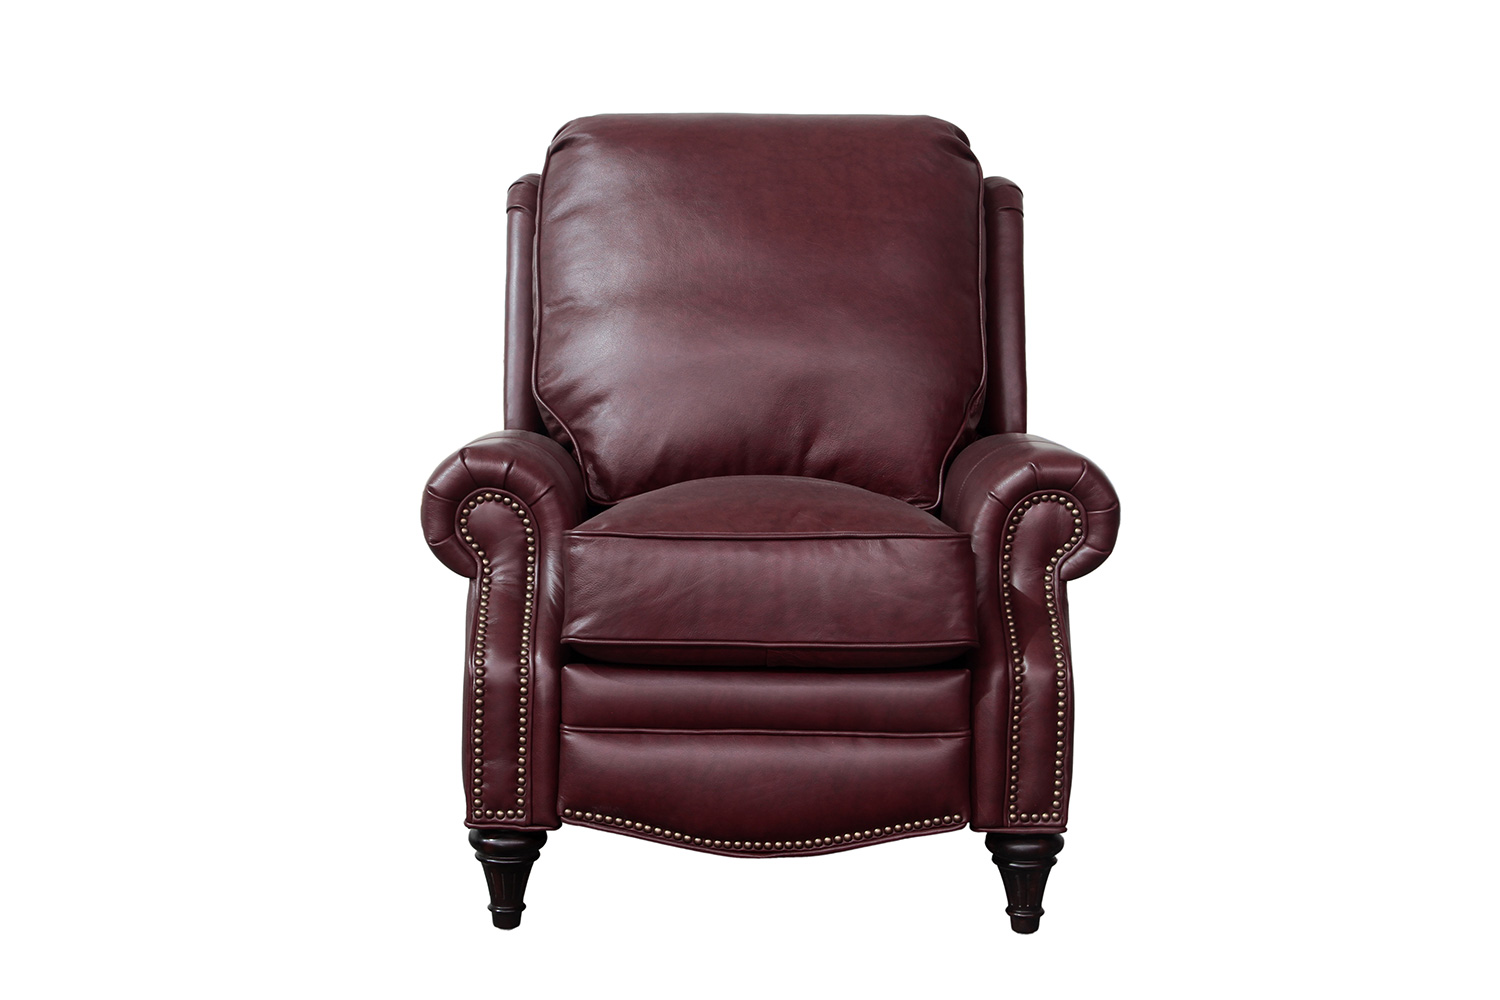 Barcalounger Avery Recliner Chair - Shoreham Wine/All Leather